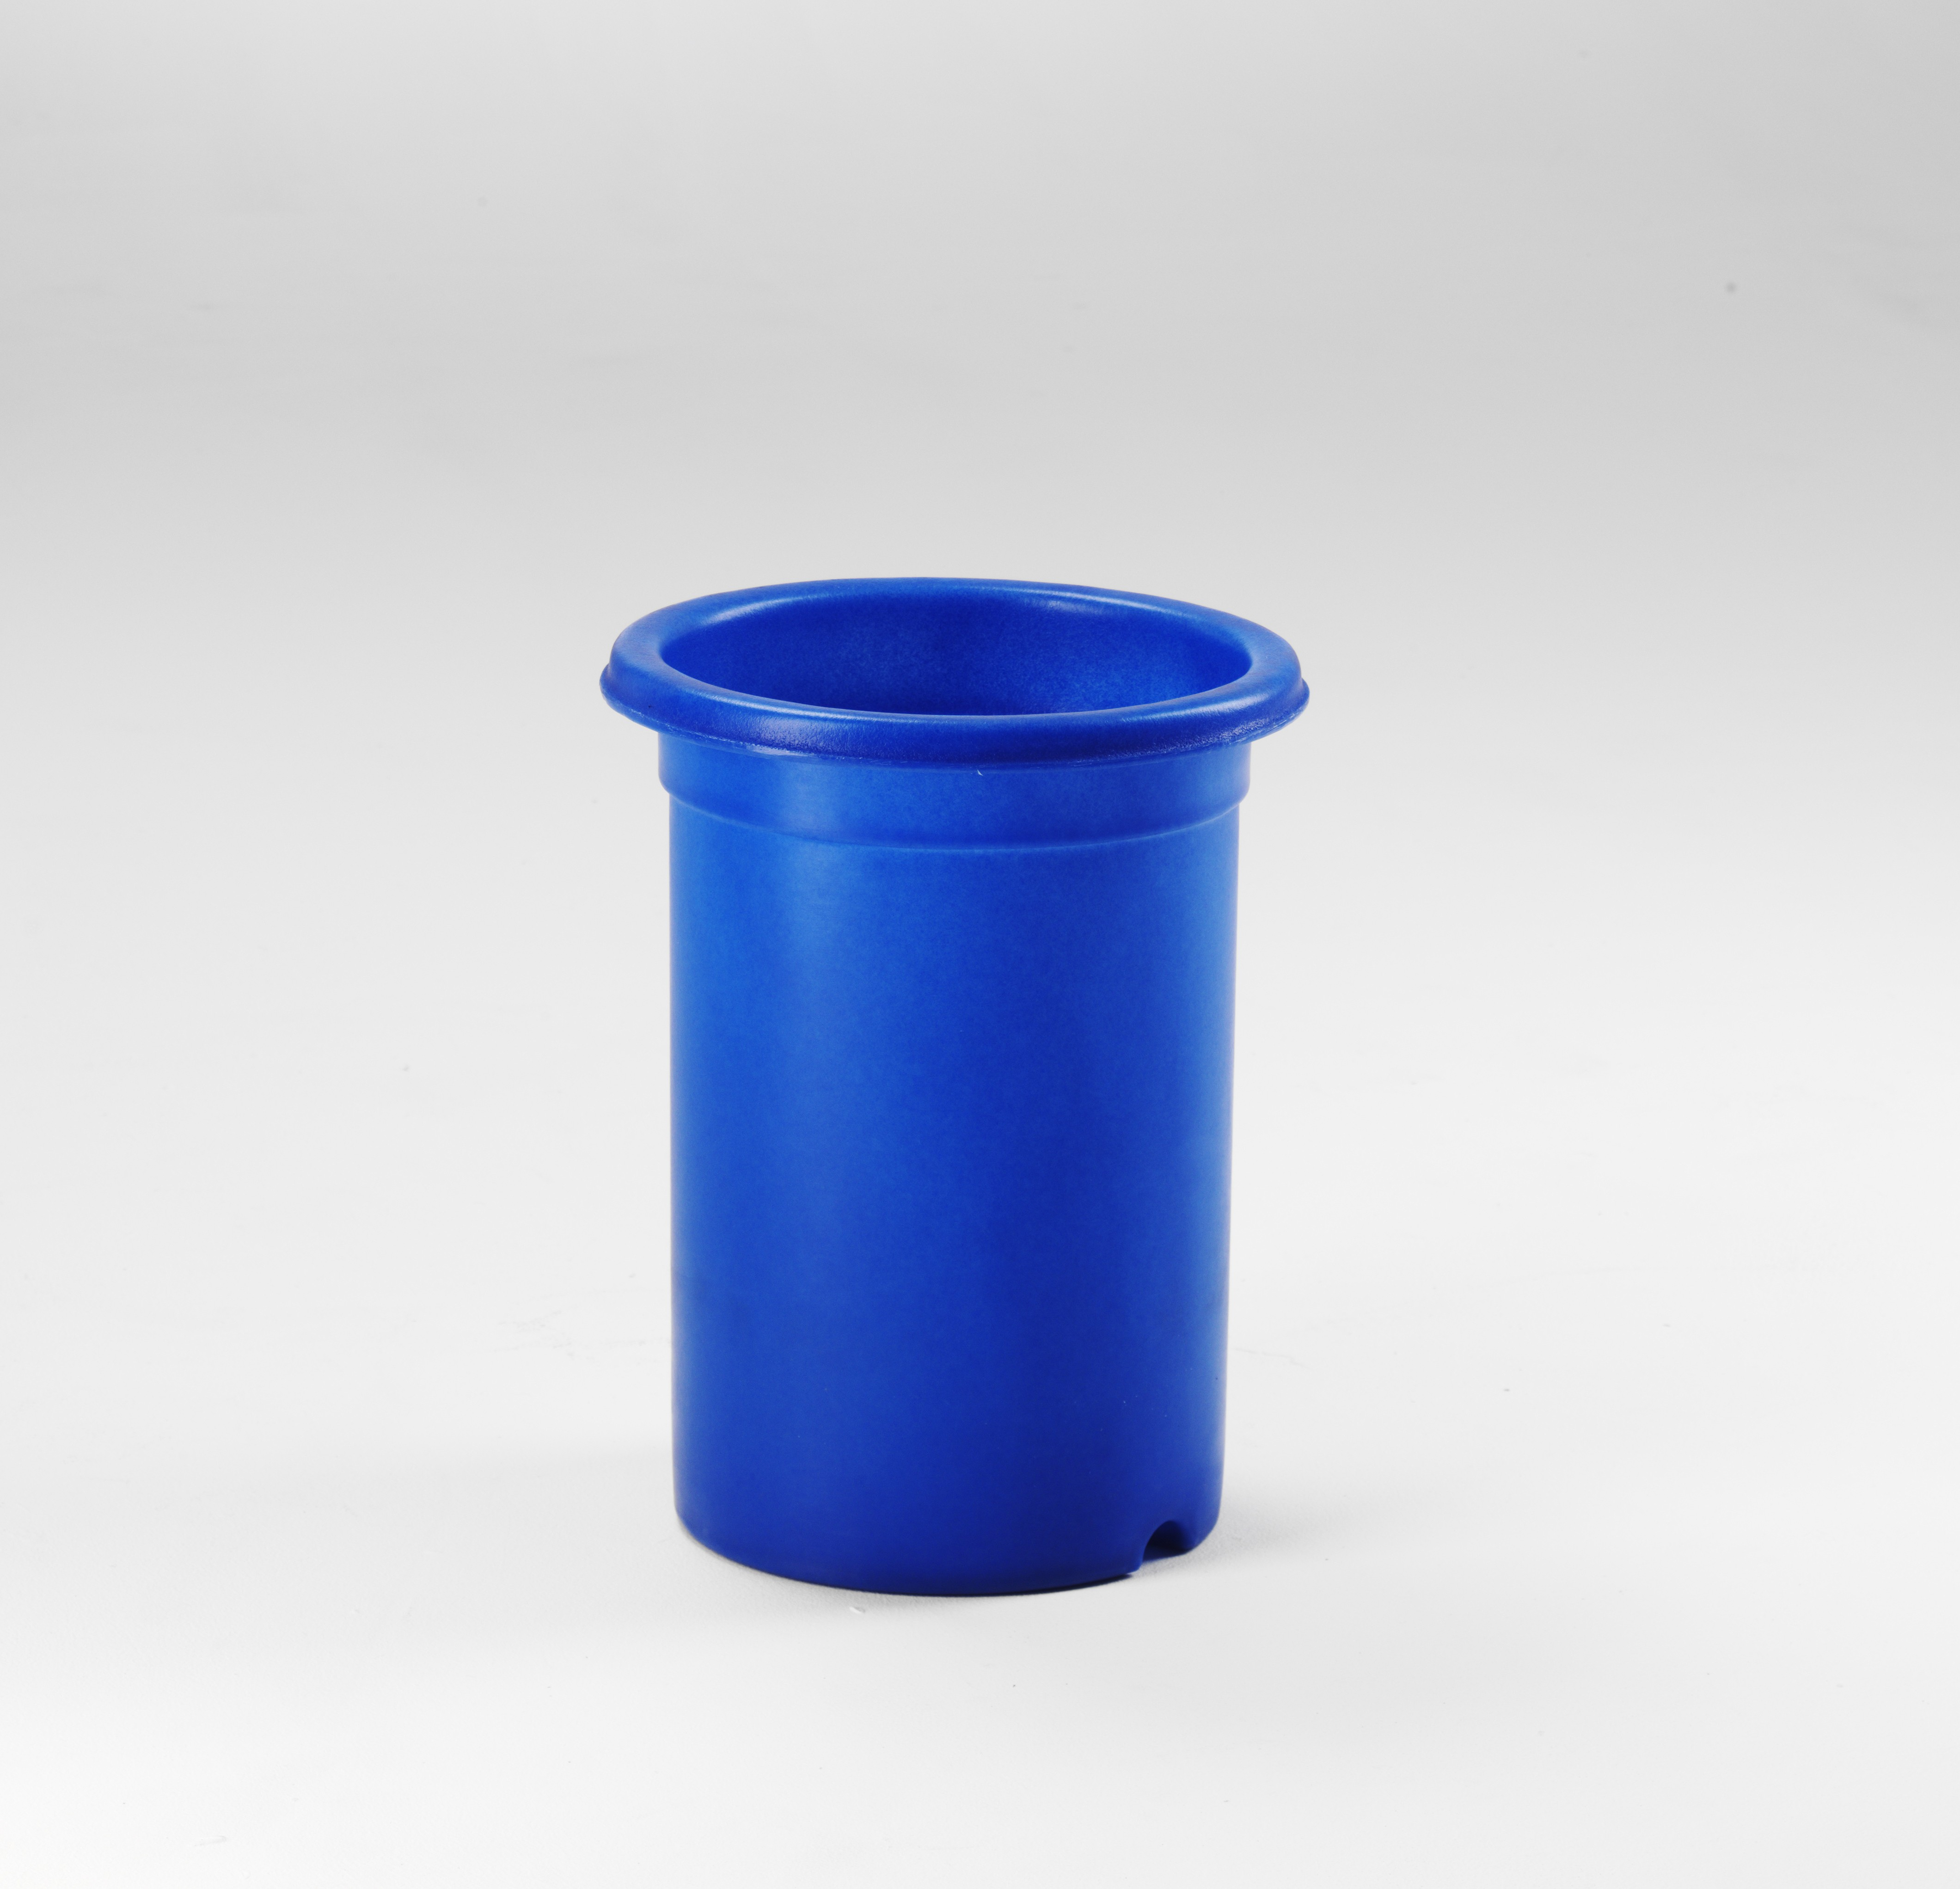 Tapered Bins - Plastic Moulded Bins - Tapered moulded tubs | Plastic ...